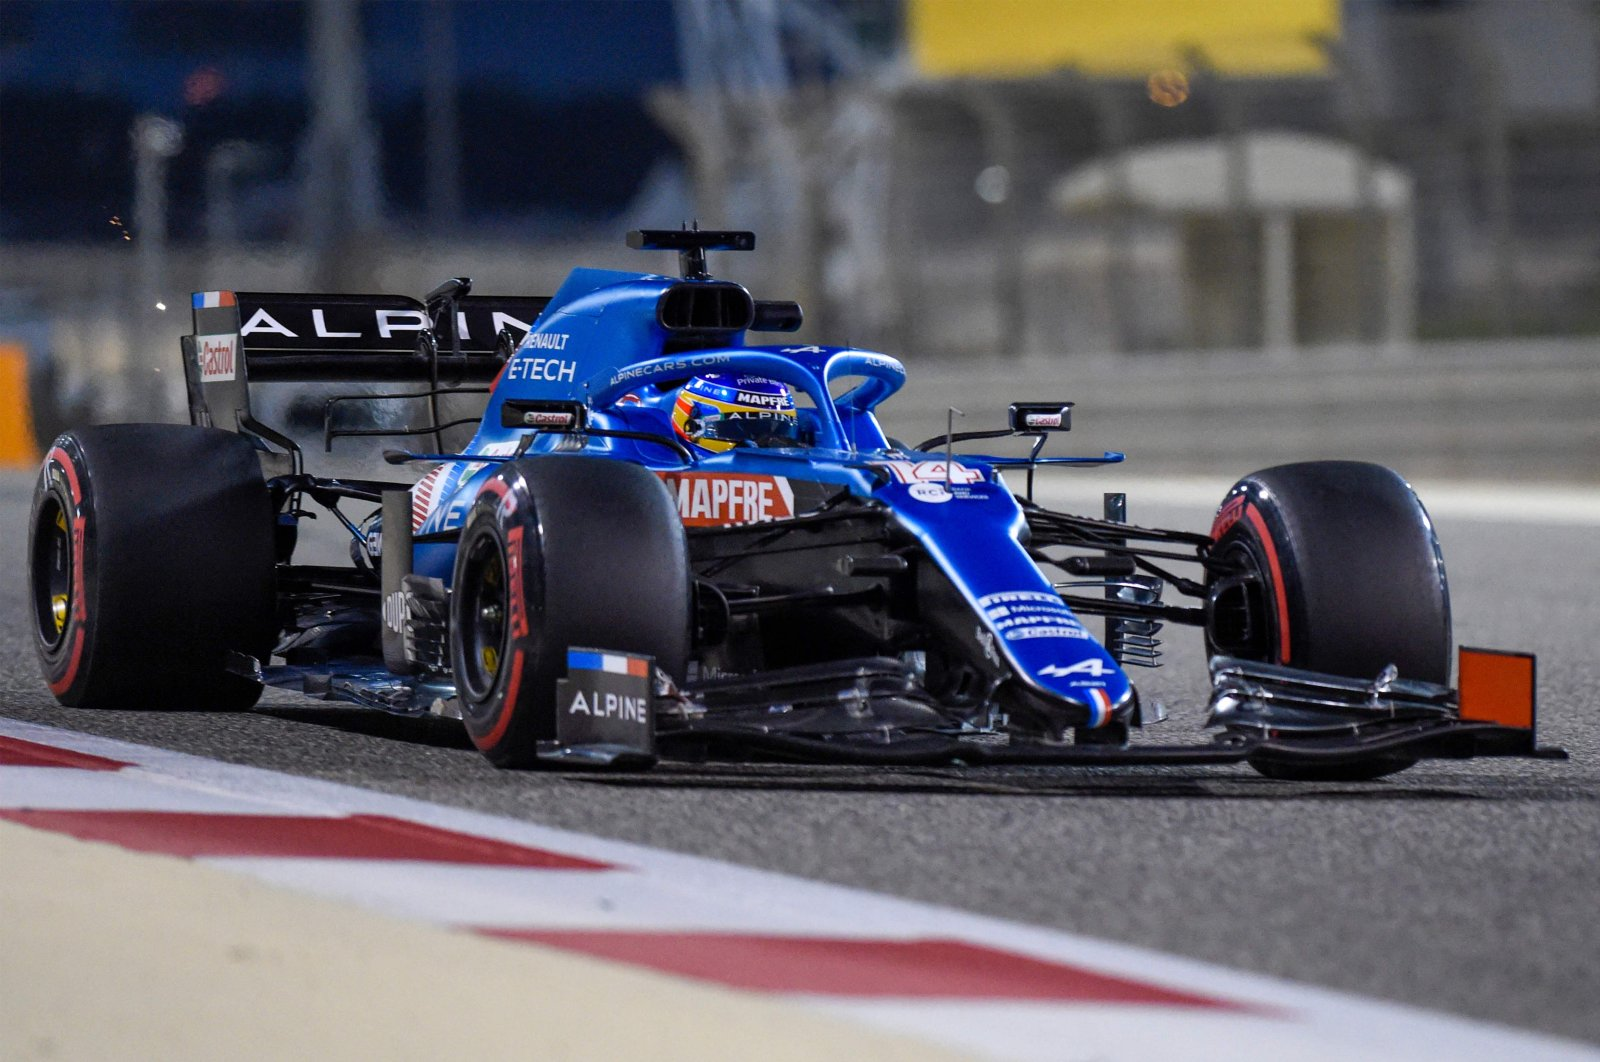 Alpine driver Fernando Alonso in action during the third day of the Formula One pre-season testing at the Bahrain International Circuit, in Sakhir, Bahrain, March 14, 2021. (AFP Photo)